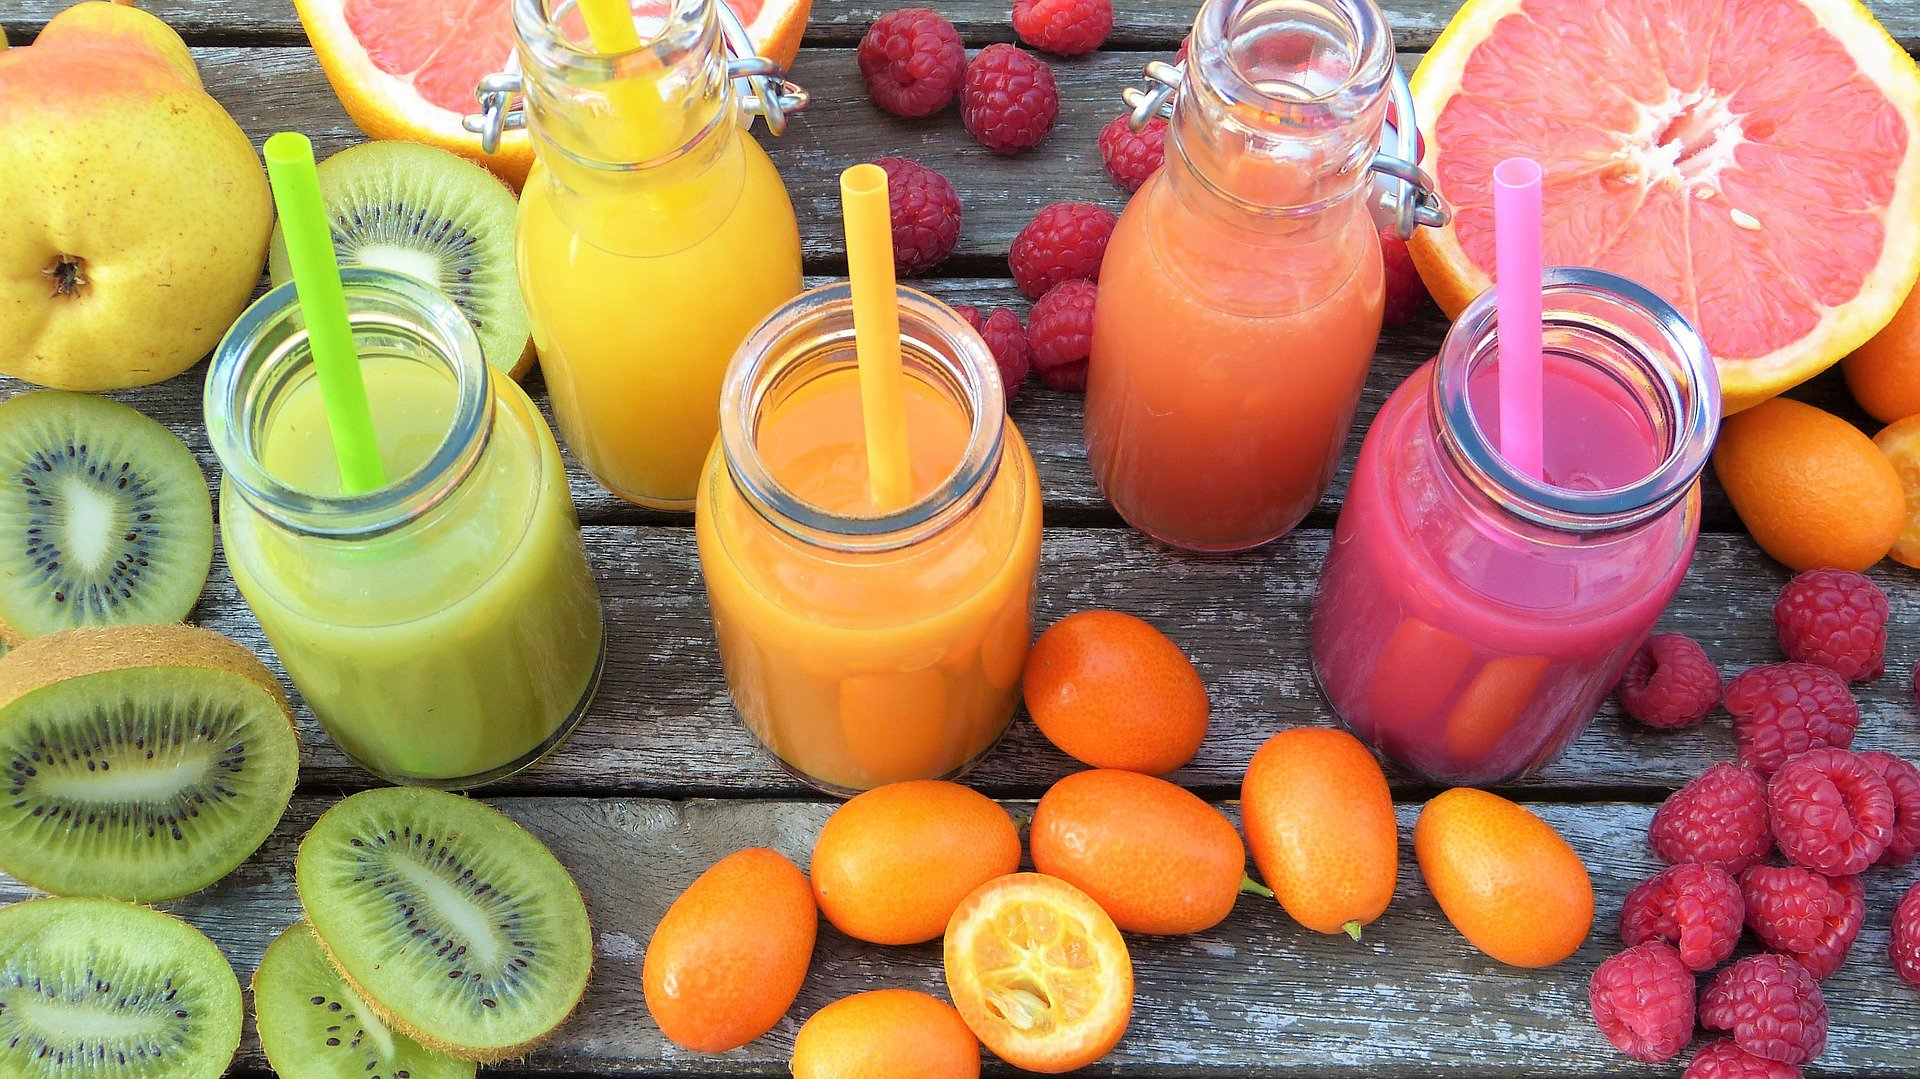 smoothies-2253423_1920.jpg